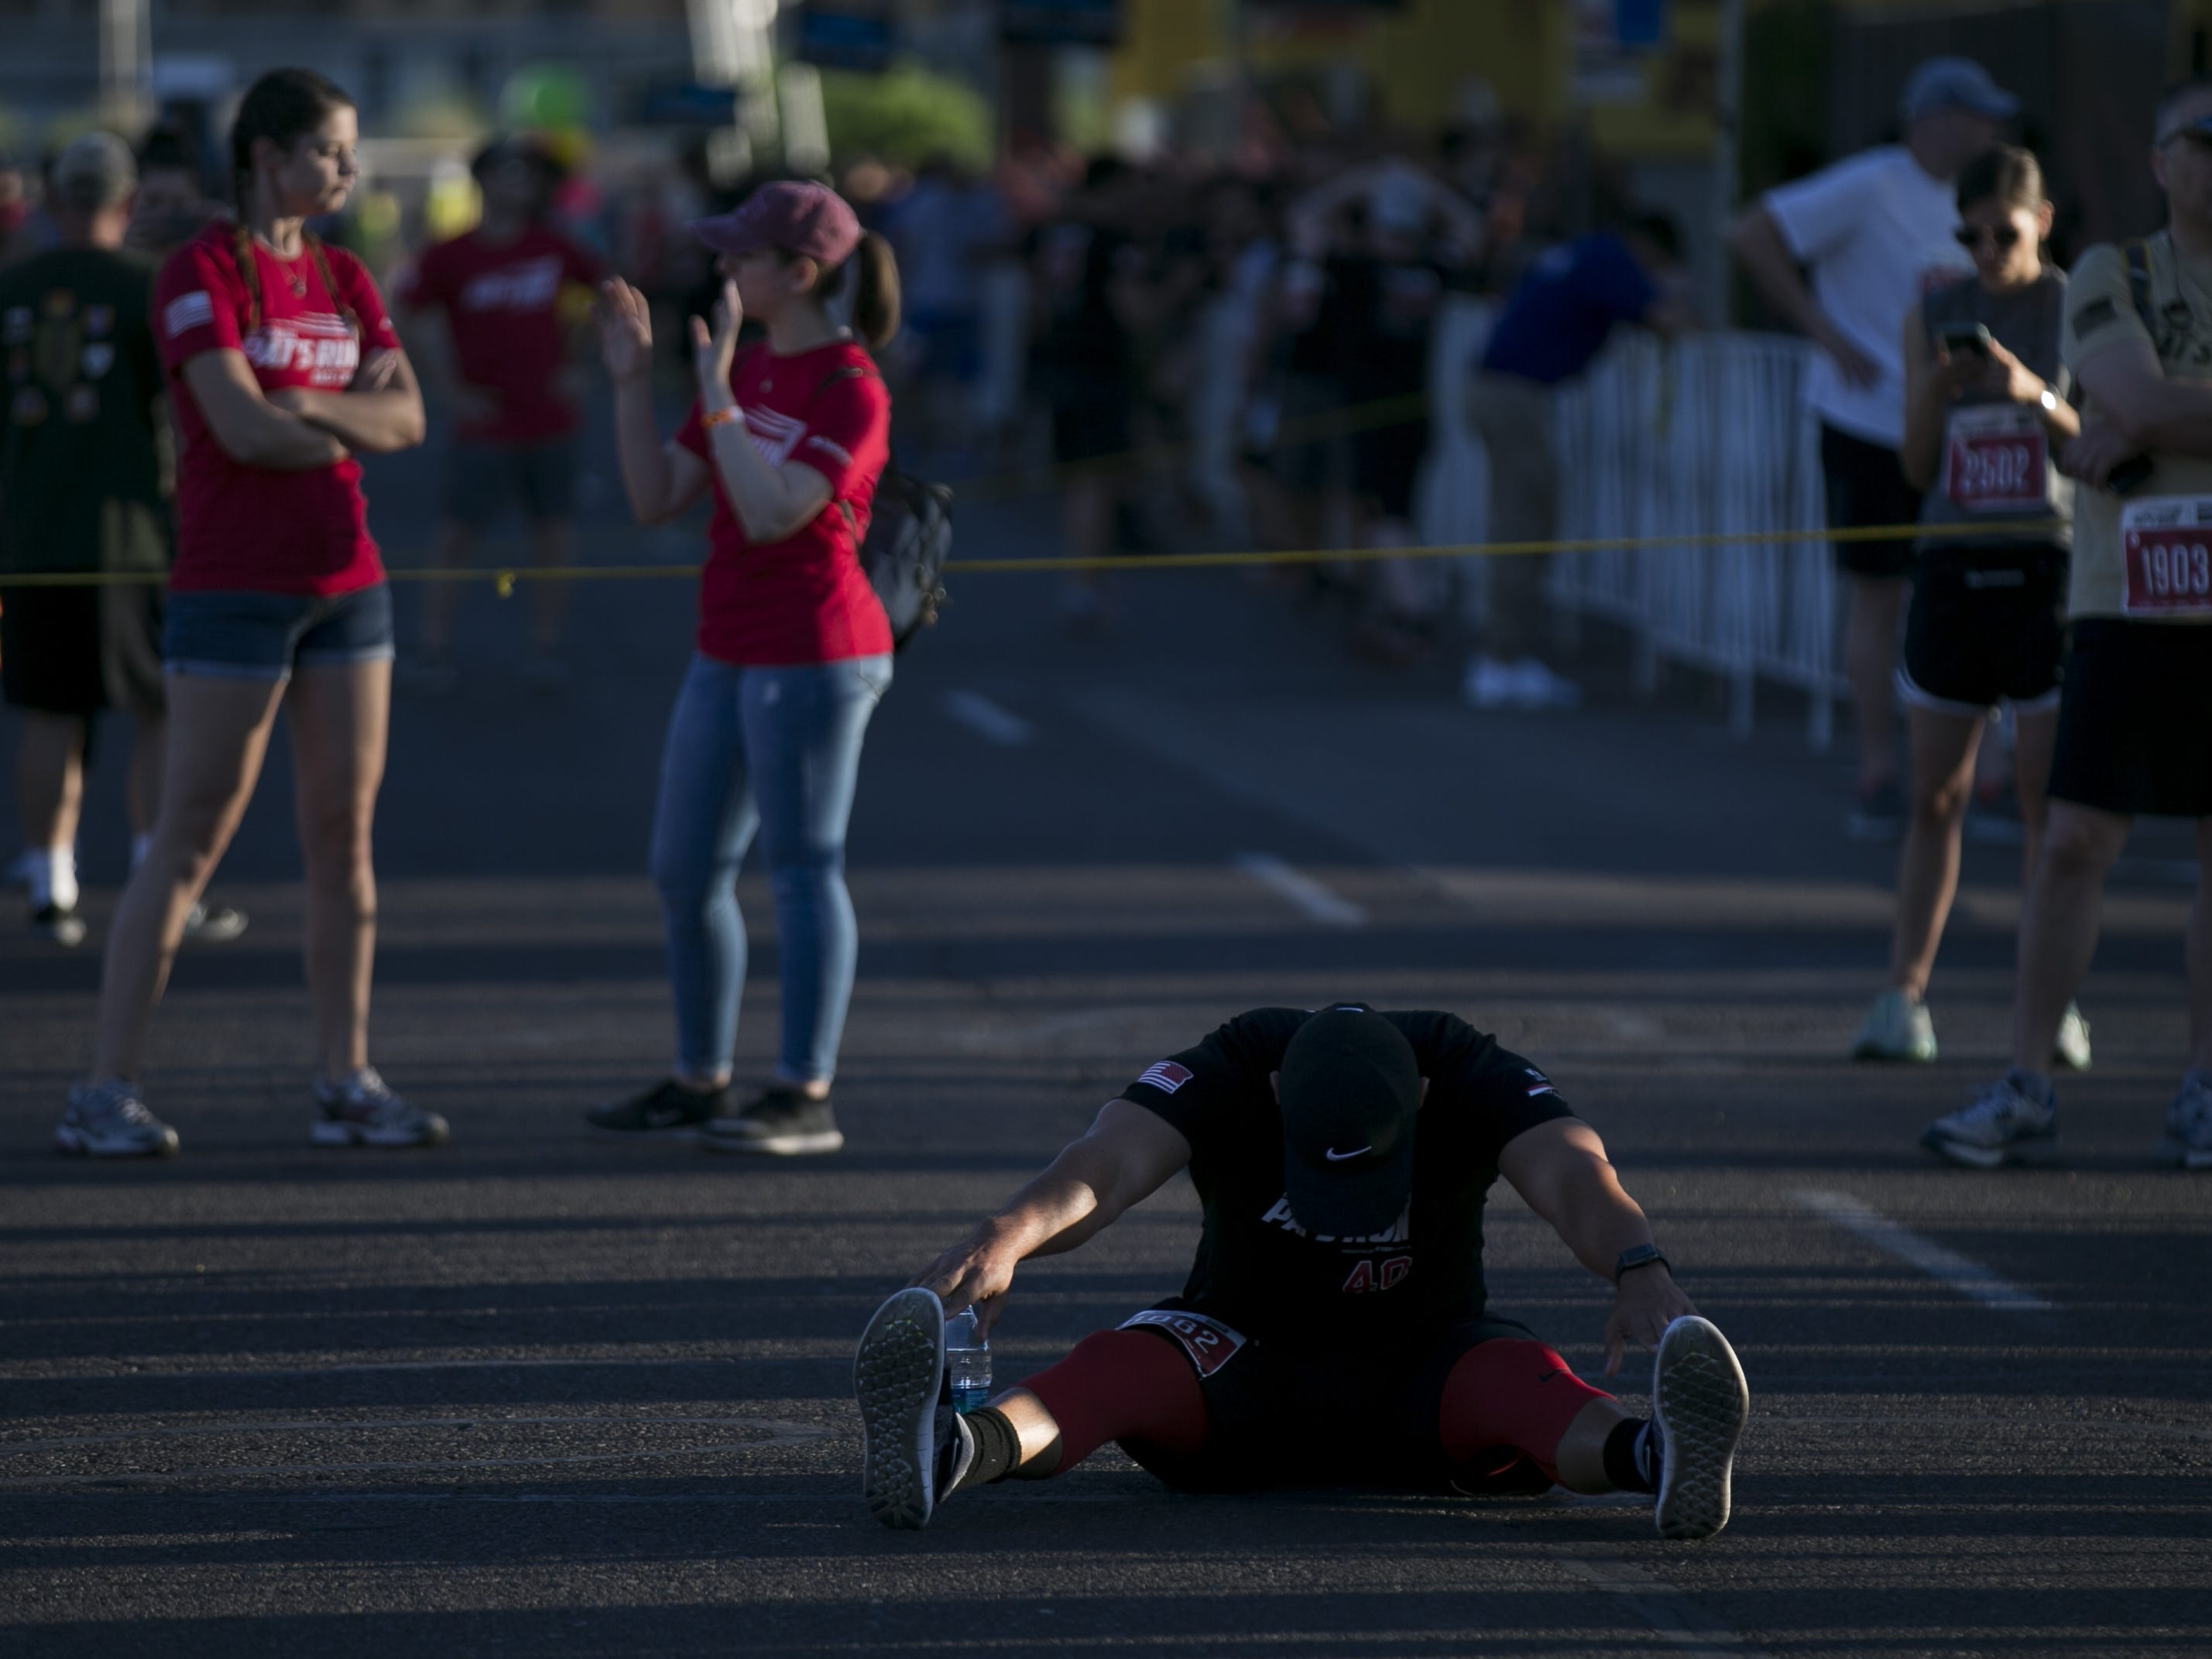 Runners stretch before participating in Pat's Run 2019 in Tempe on April 27, 2019.